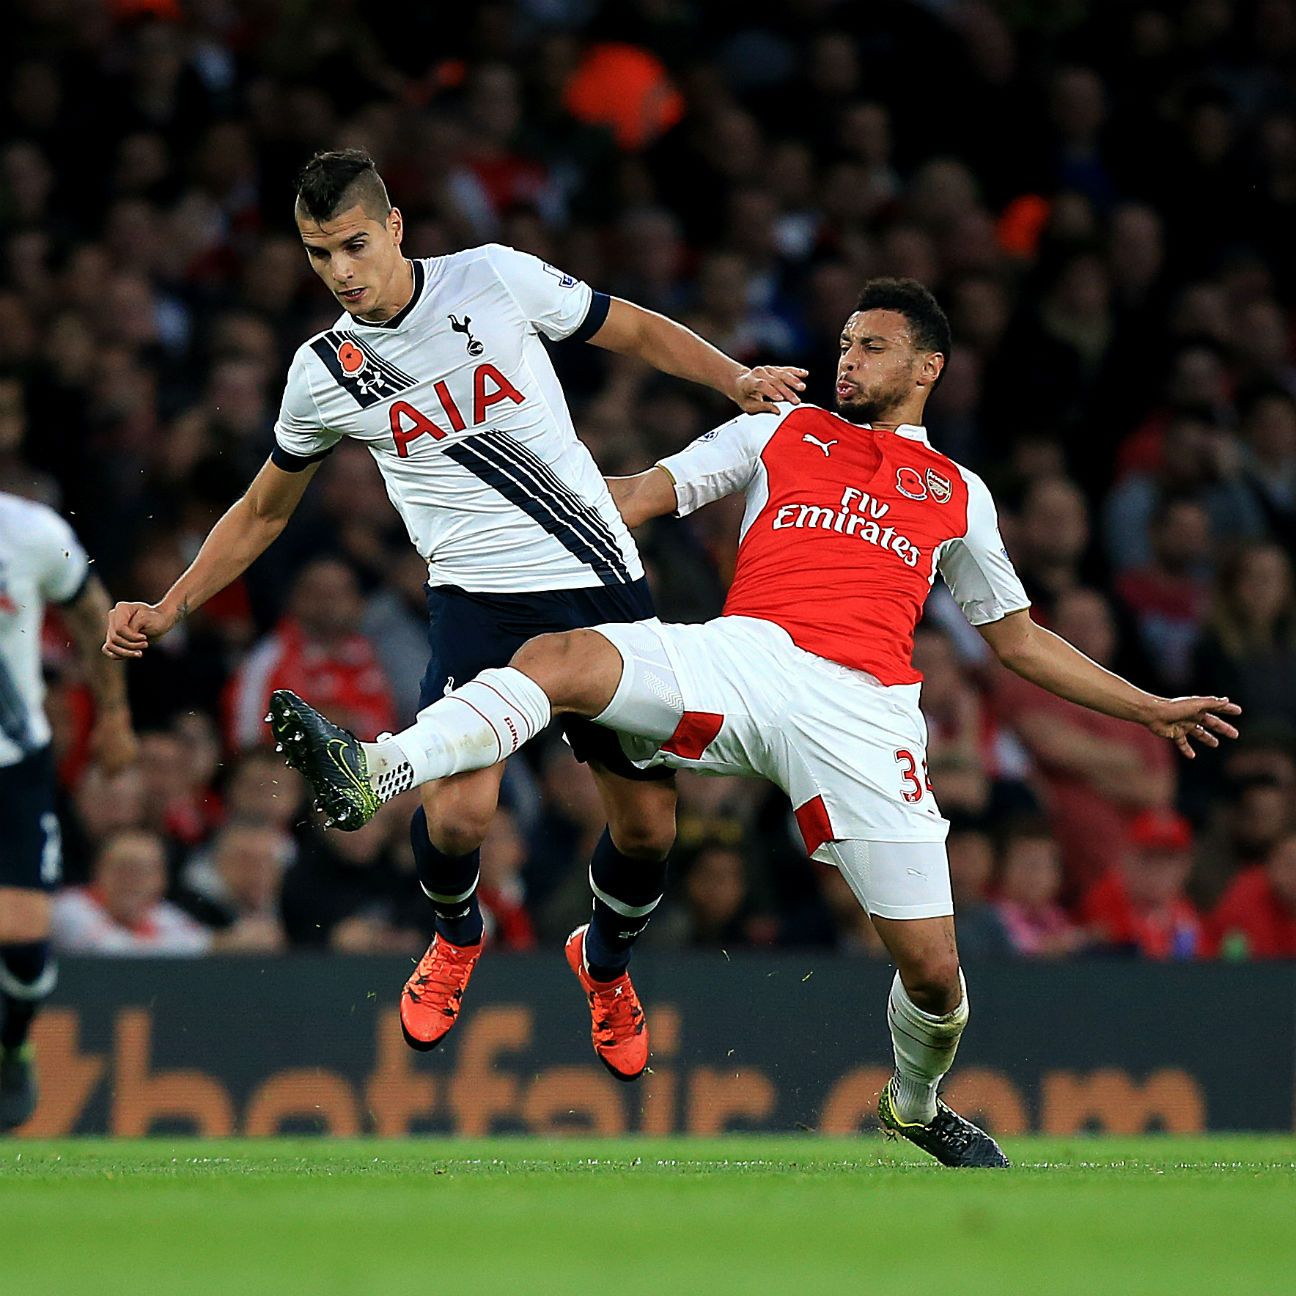 Tottenham were unable to earn their first win at The Emirates since 2010 in Sunday's 1-1 North London derby draw.